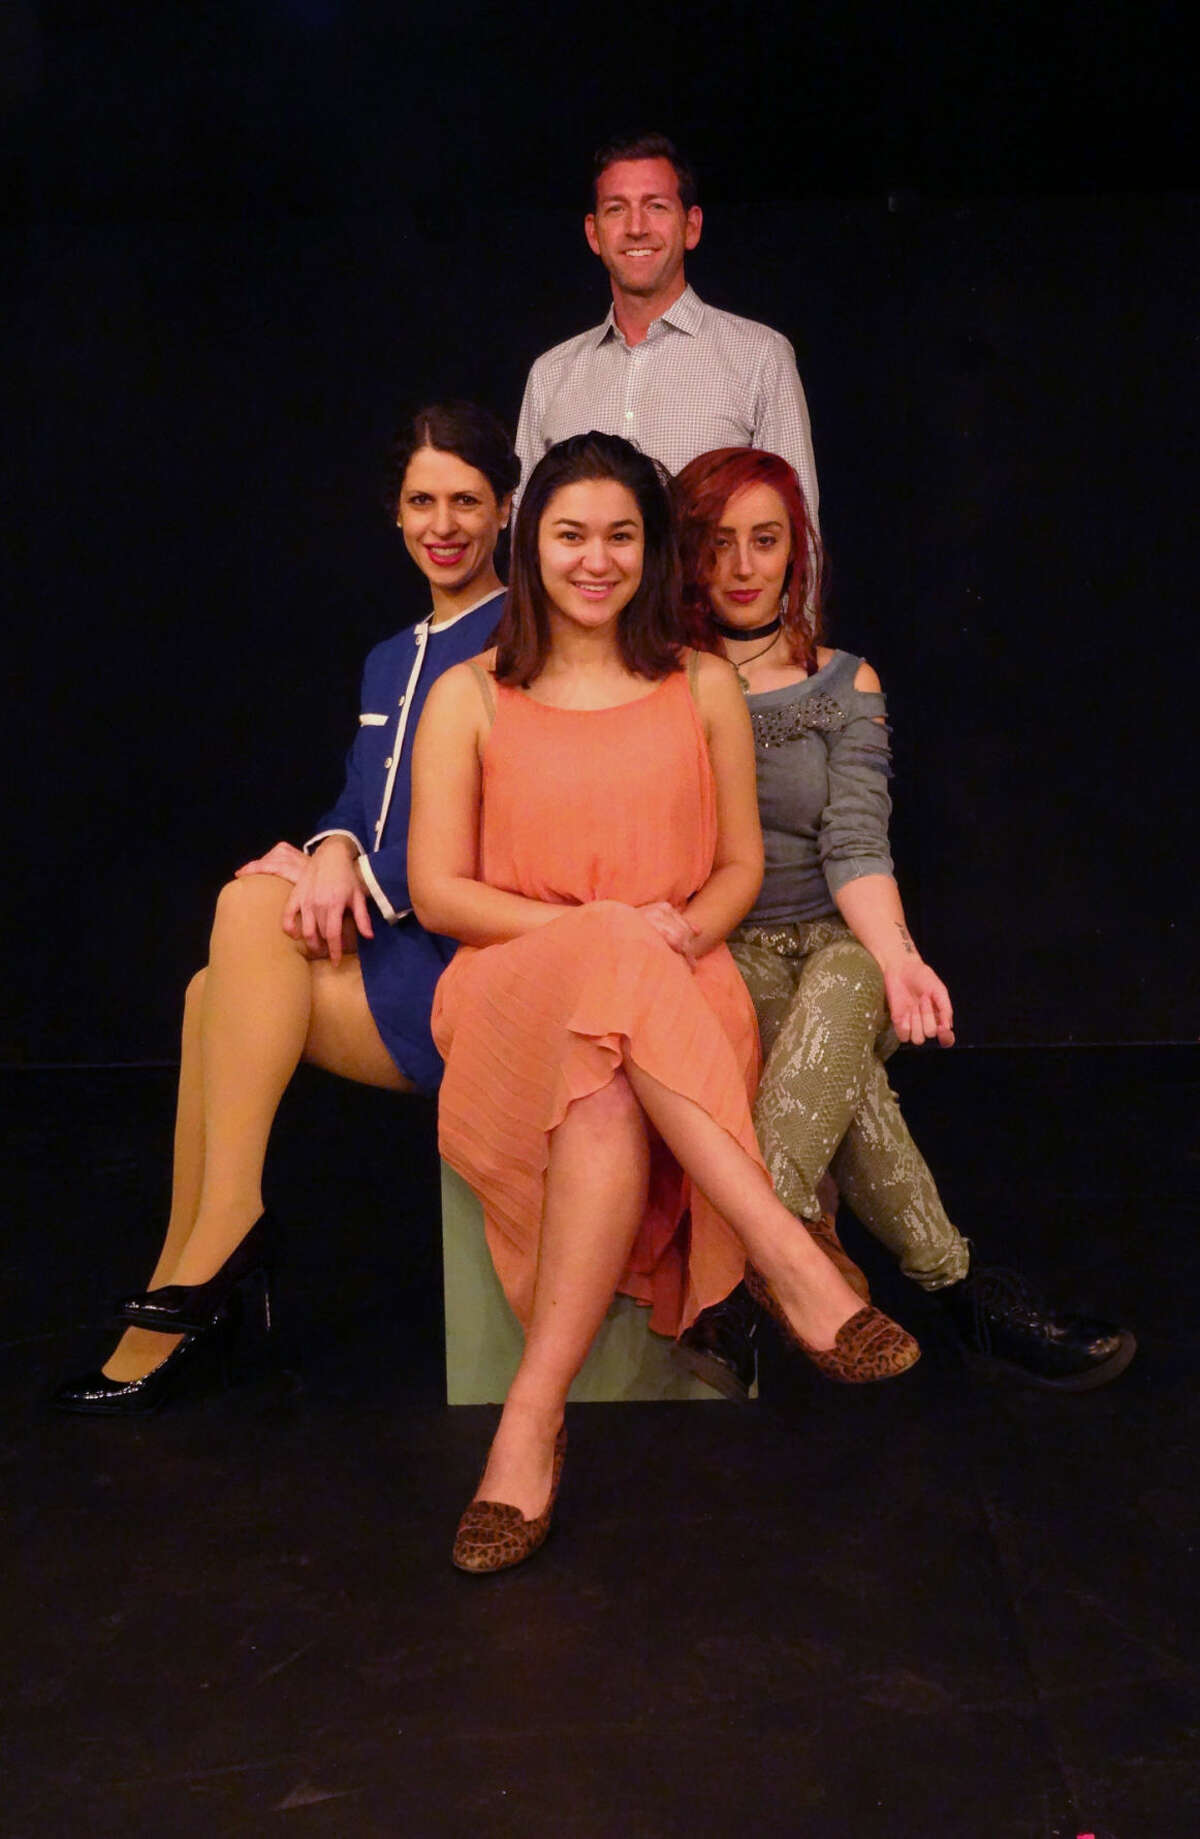 """The perpetual bachelor, Robert, is constantly surrounded by """"available"""" women and many married friends in the Stephen Sondheim/ George Furth musical, """"Company,"""" playing in Curtain Call's Dressing Room Theatre Feb. 11 through March 5. Seen here as Bobbie is John Congdon with Anna Oxman, Rachel Schulte and Lisa Dahlstrom."""